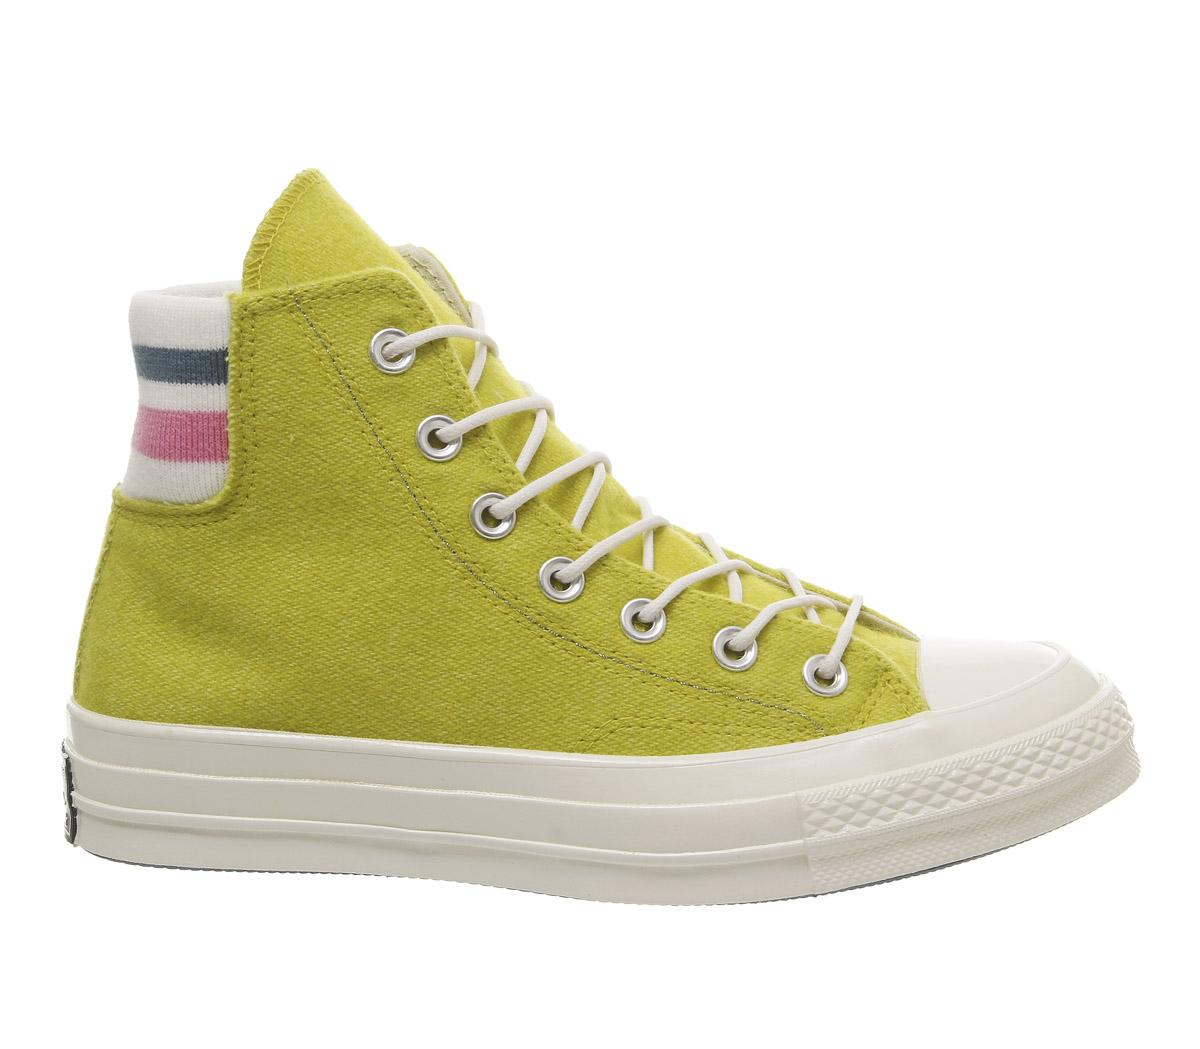 Bold All Pink Sports Star Converse Trainers Unisex Hi 70's Citron 8wkXZNn0PO